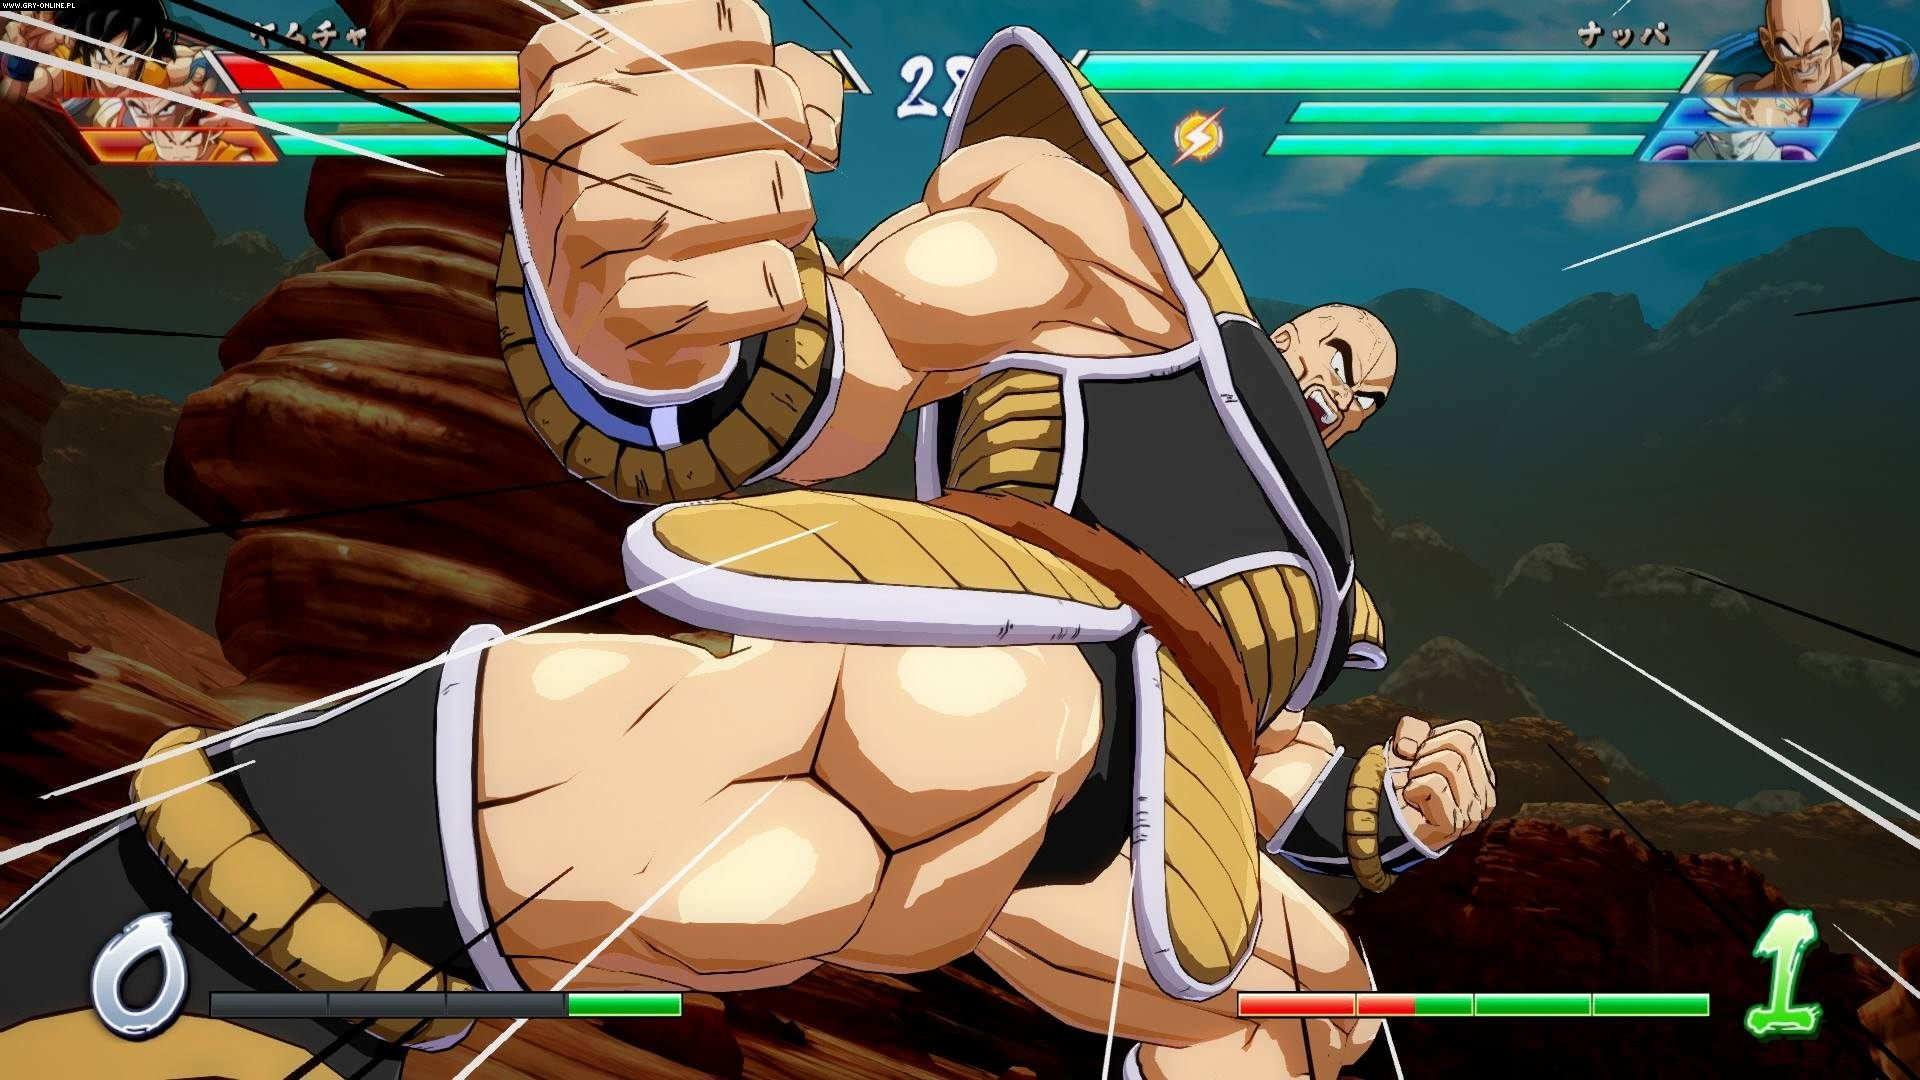 Dragon Ball FighterZ PC, PS4, XONE, Switch Gry Screen 165/230, Arc System Works, Bandai Namco Entertainment